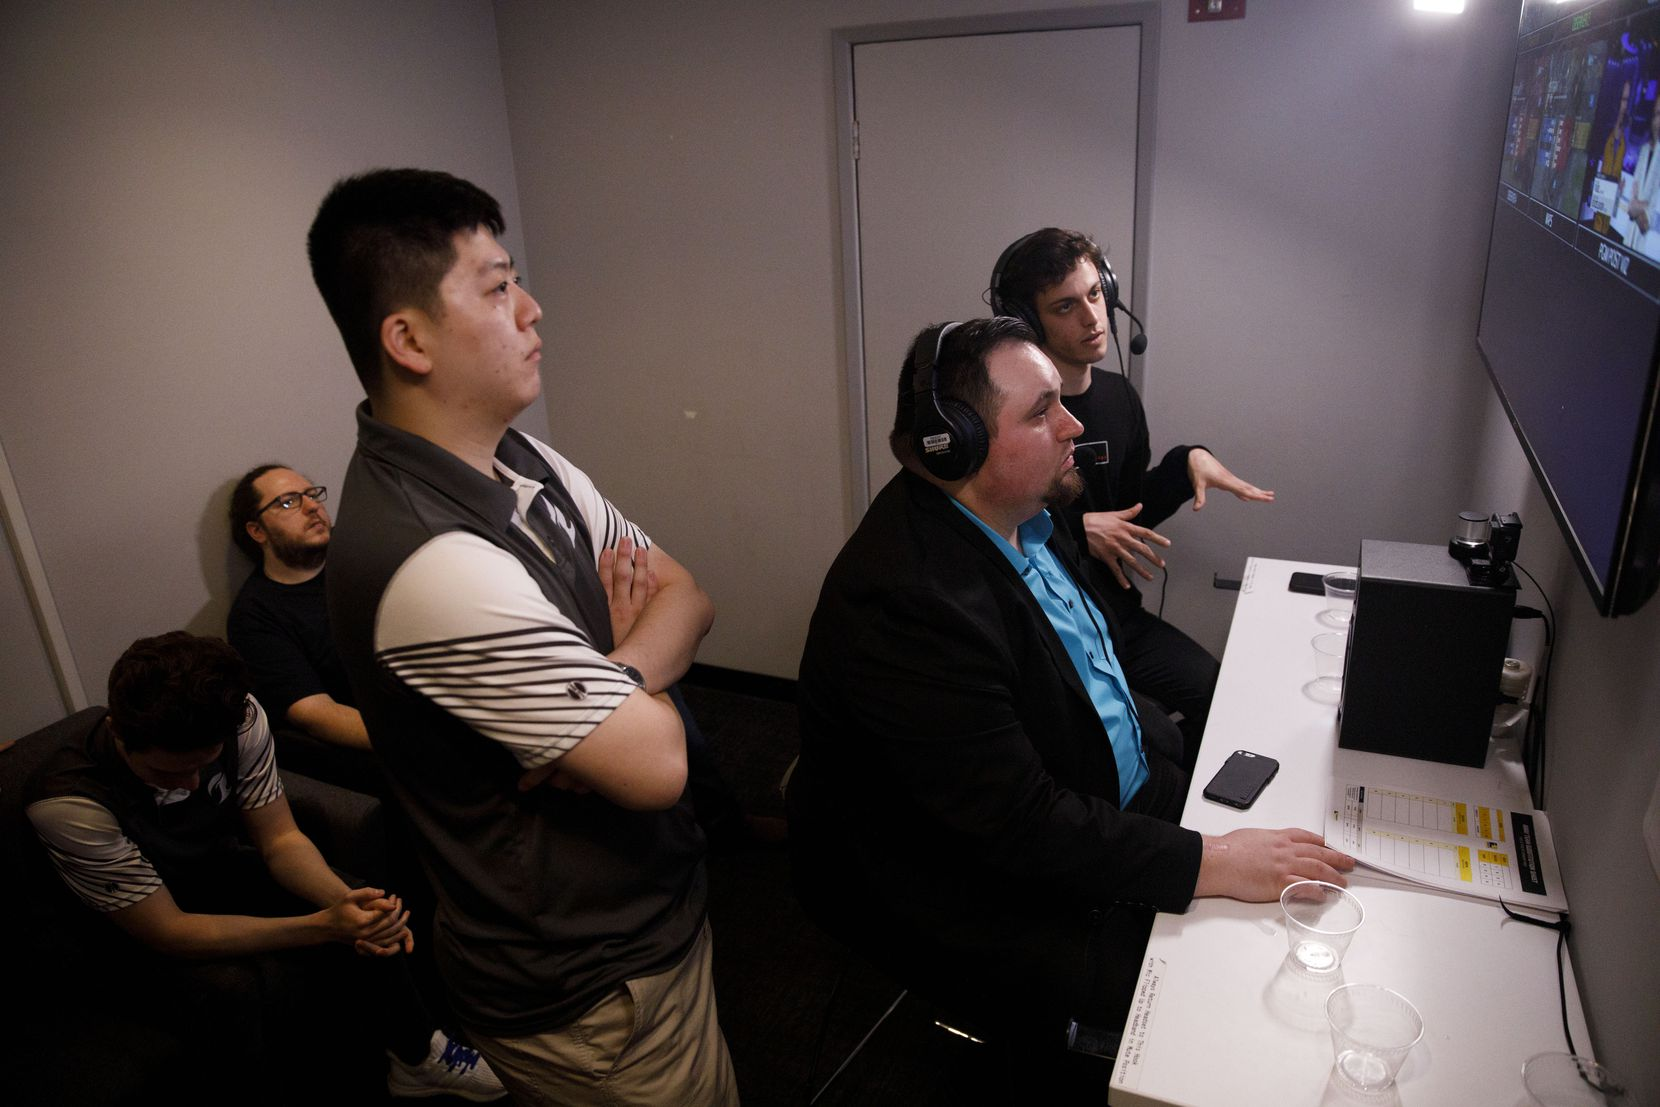 """Head coach Aaron """"Aero""""Atkins, center, Kang """"Vol'Jin"""" Min-Gyu, left, and Julien """"daemoN"""" Ducros watch their team from the backstage dugout during the Overwatch League team match between the Dallas Fuel and New York Excelsior on Saturday, June 29, 2019 in Burbank, Calif."""